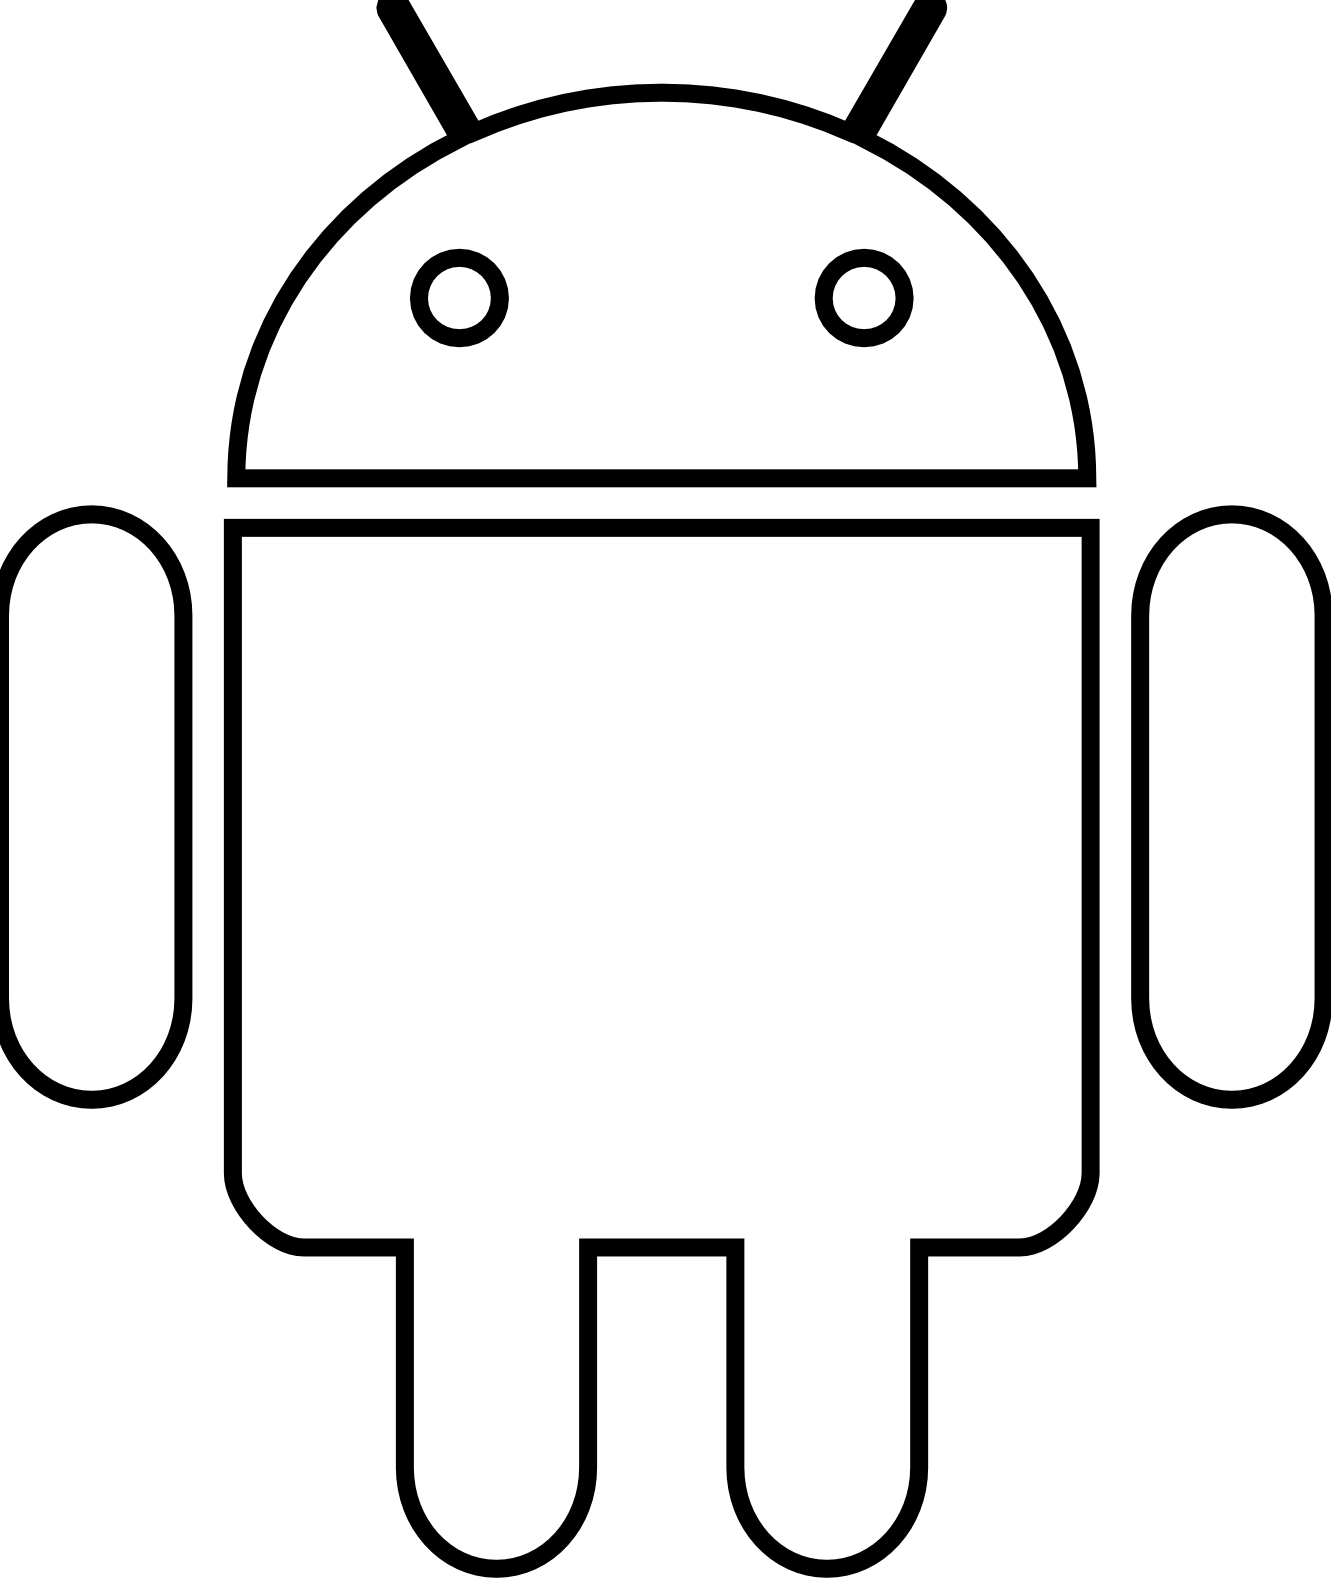 Android clipart #5, Download drawings